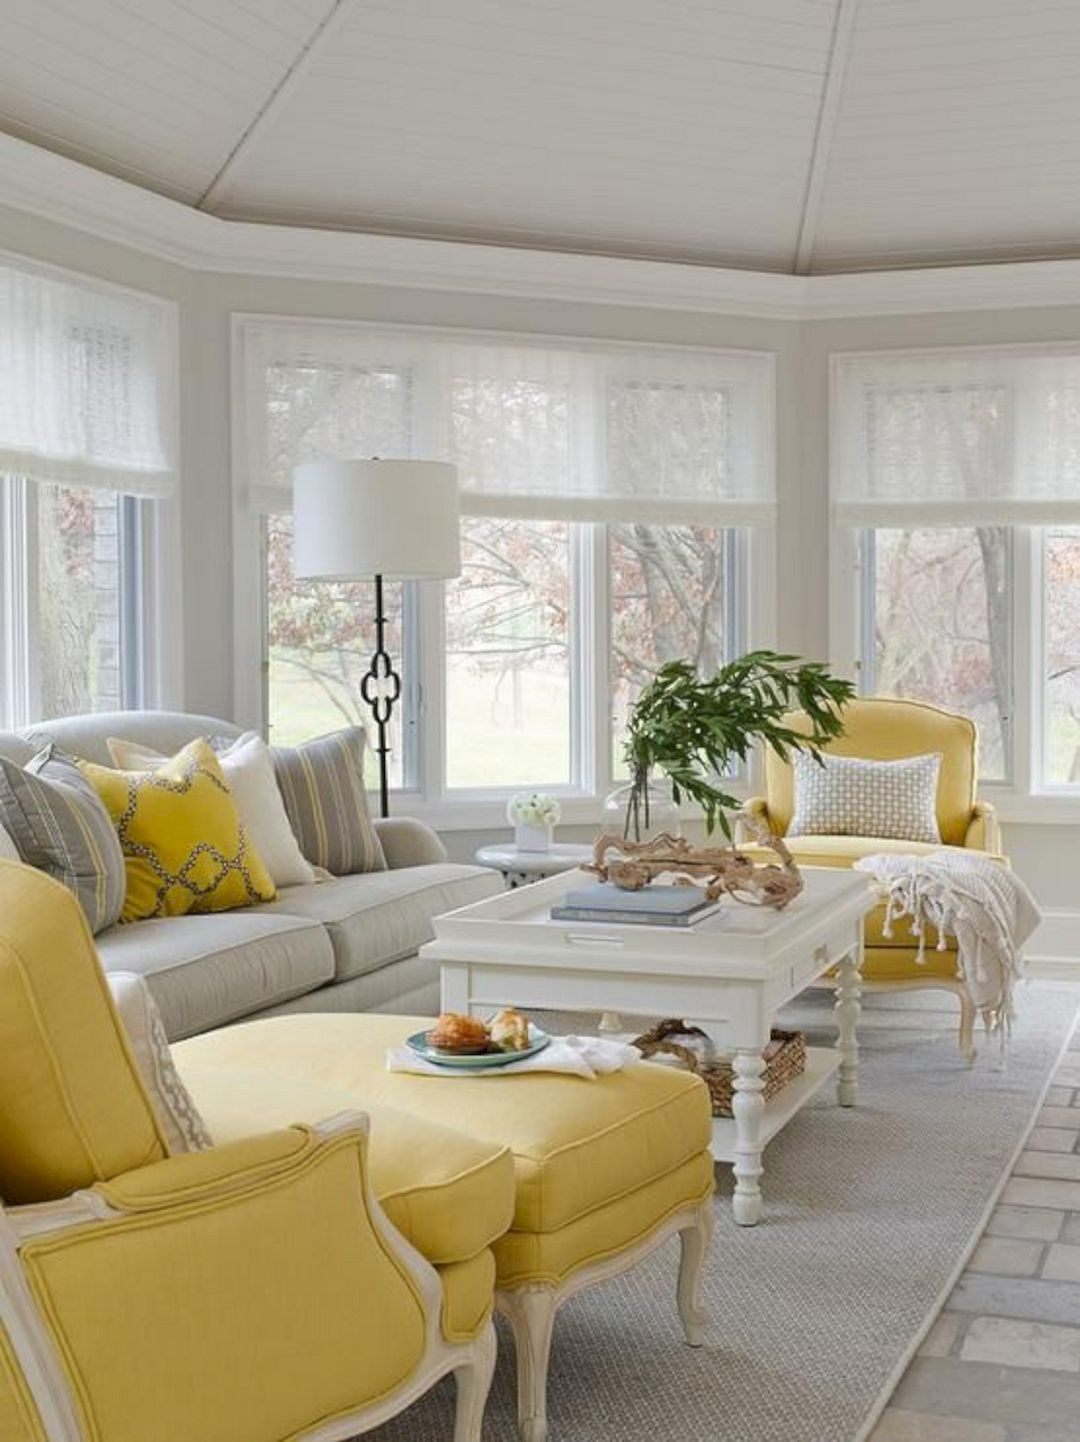 Rooms By Design Furniture Store: 16 Furniture Ideas To Brighten Your Sunroom